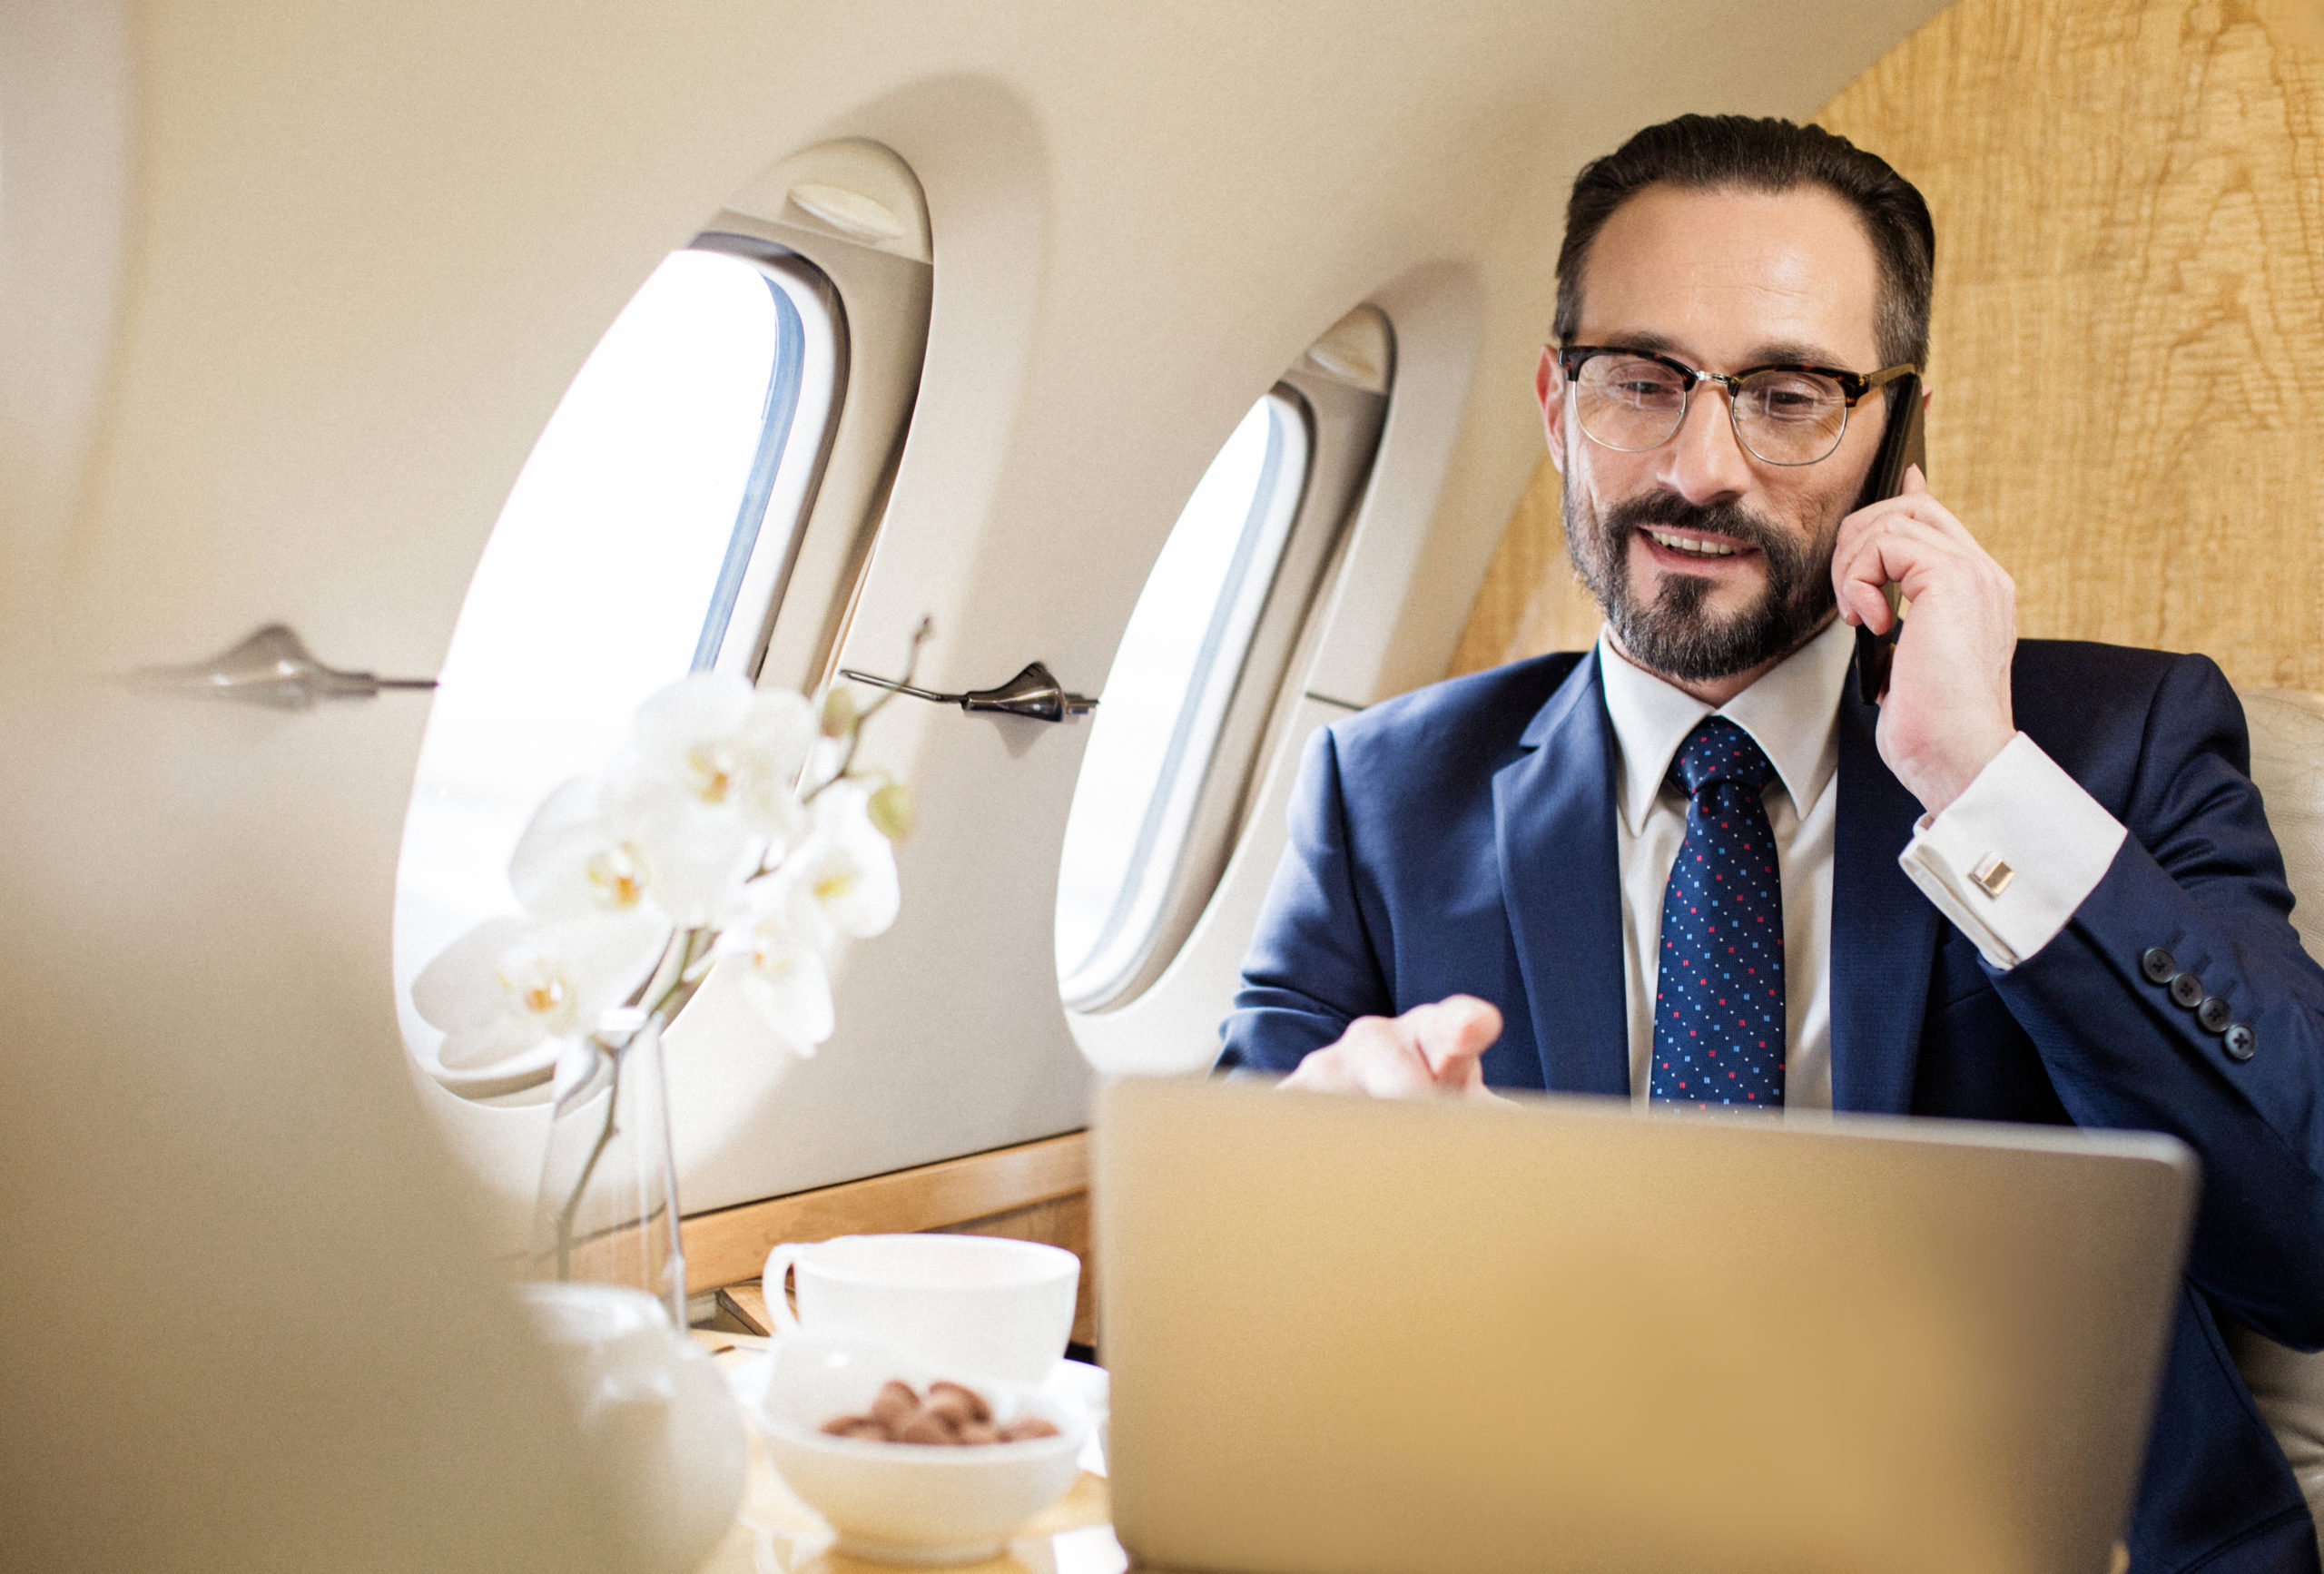 TOP QUESTIONS TO ASK WHEN CONSIDERING ANY JET CARD PROGRAM